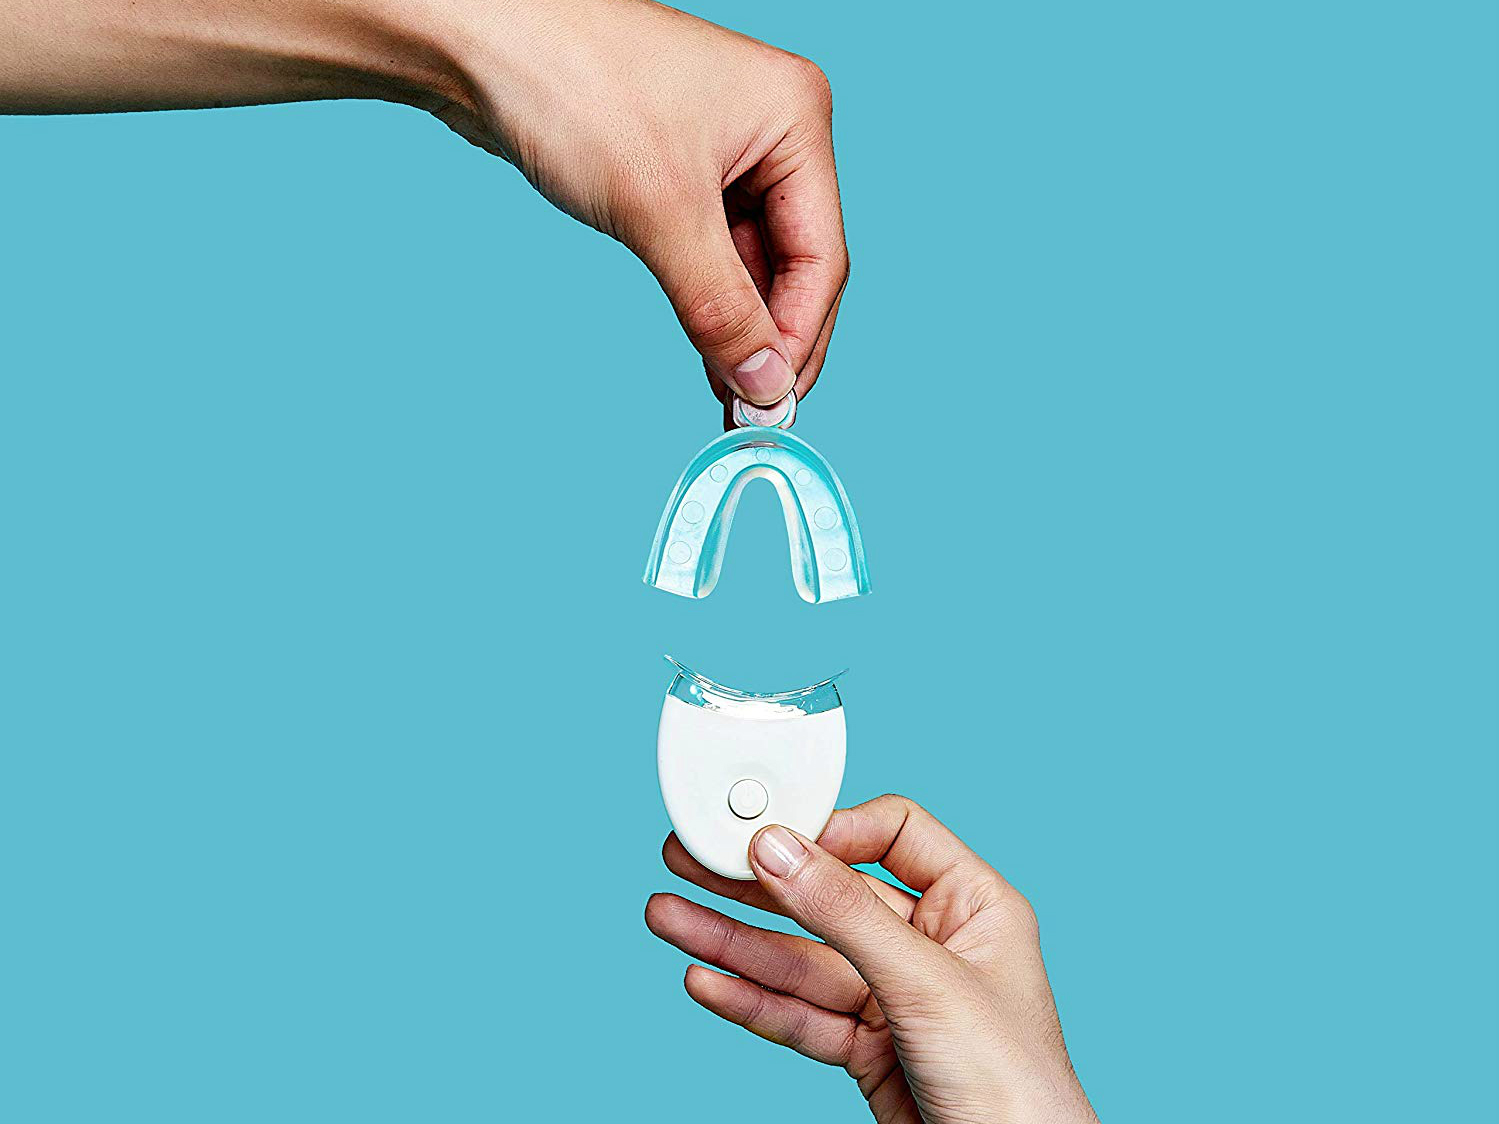 Best Teeth Whitening Products For 2020 Teeth Whitening Kits On